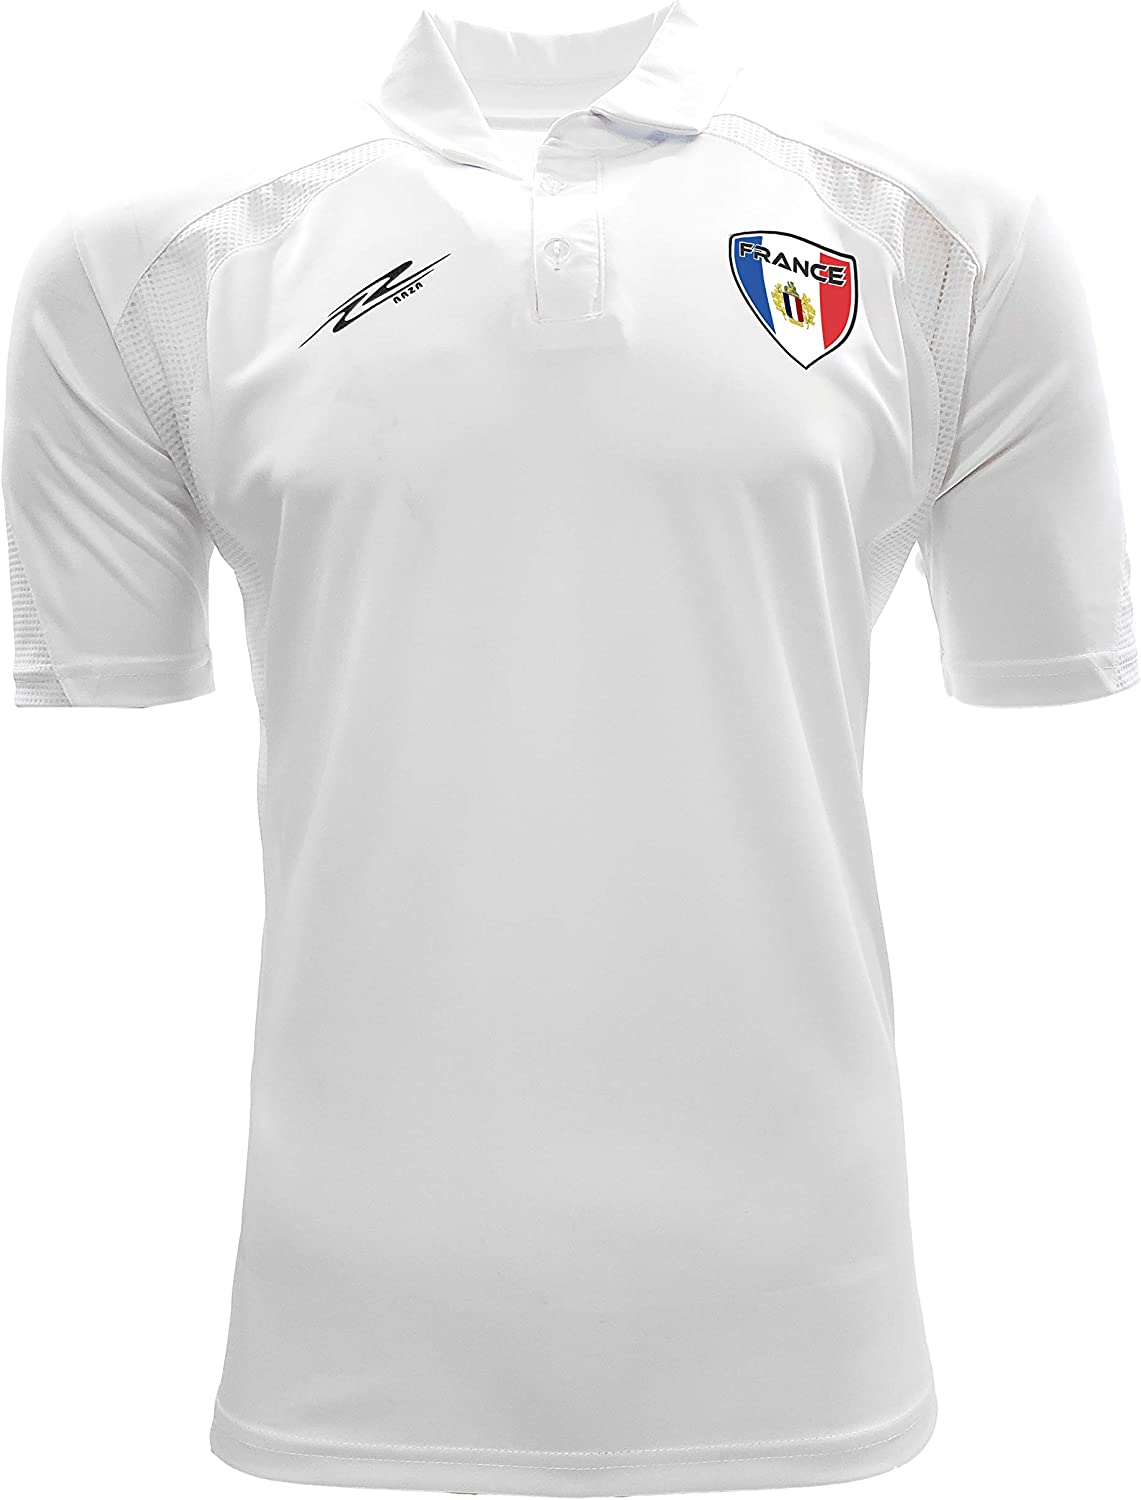 Arza Sports France Polo Shirt for Men Color Black/White/Blue/Navy